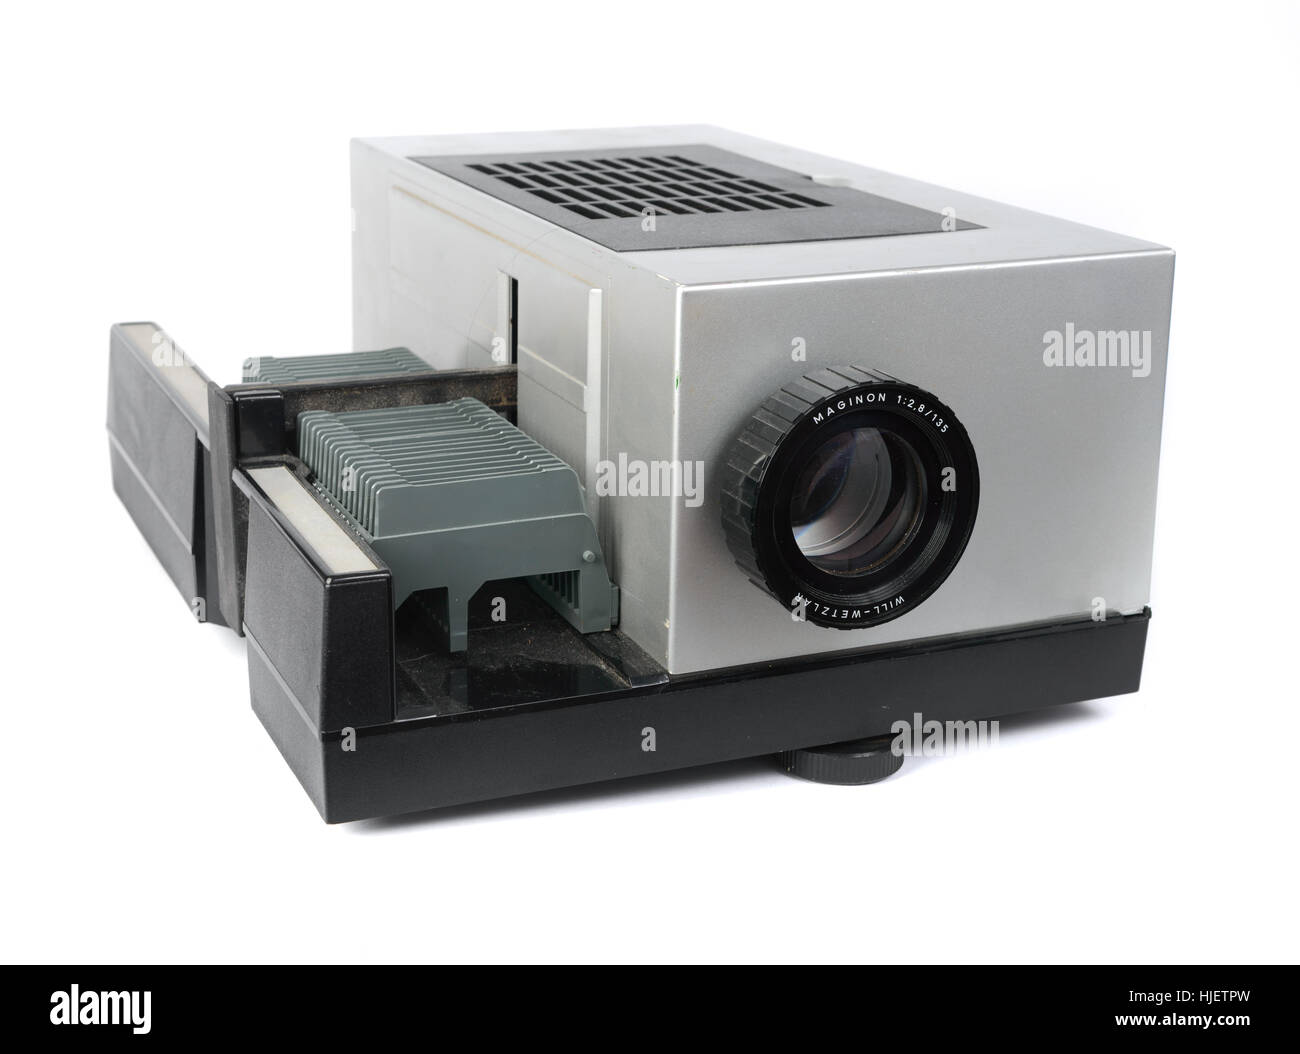 Medium format slide projector cutout isolated on white background - Stock Image